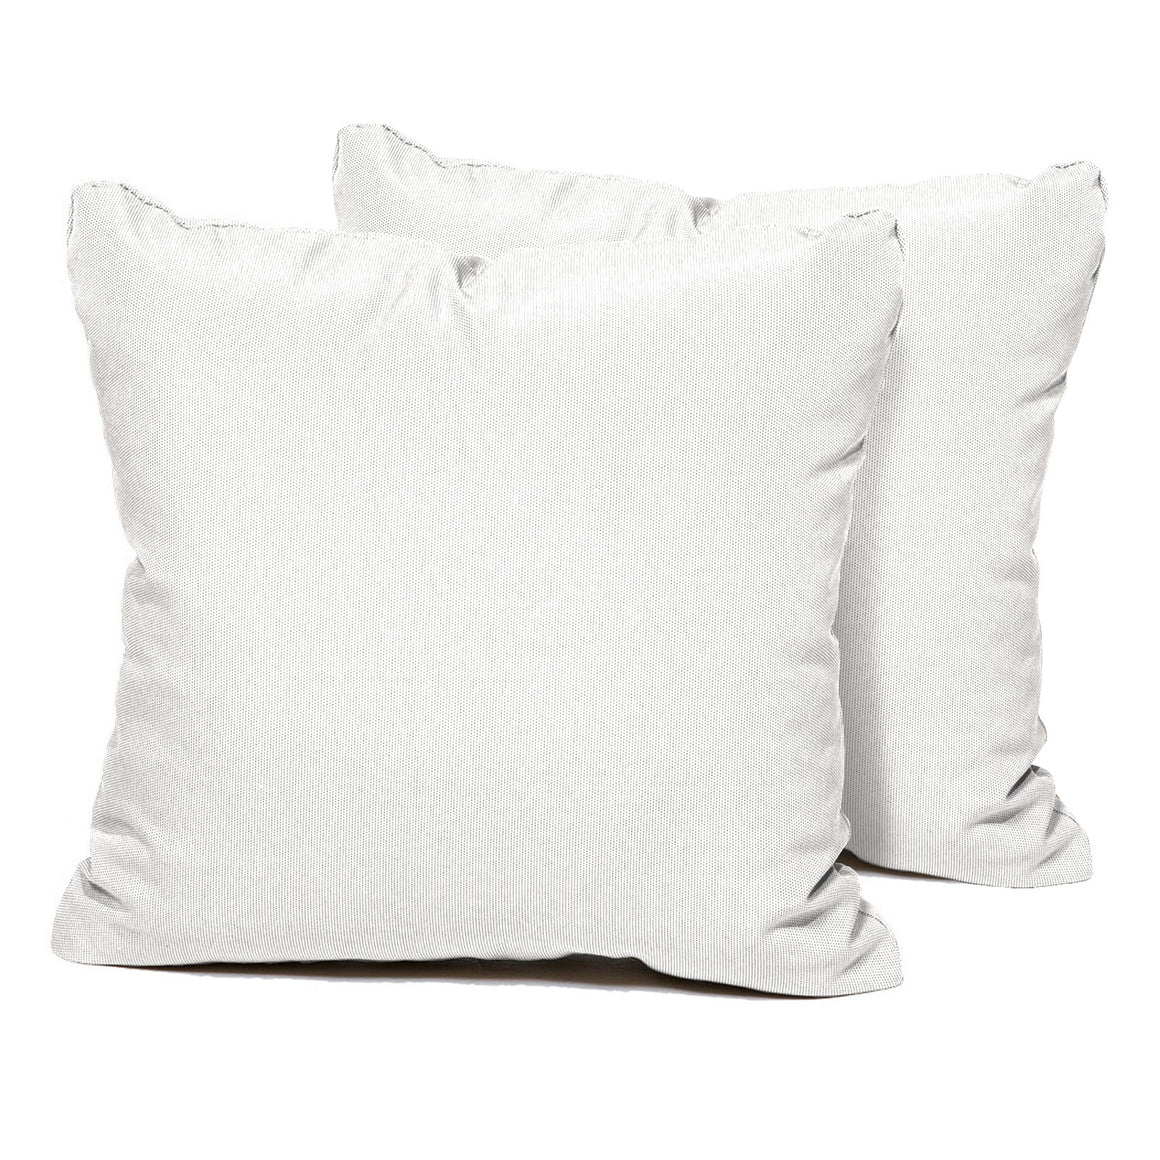 Sail White Outdoor Throw Pillows Square Set of 2 , TK Classics- grayburd